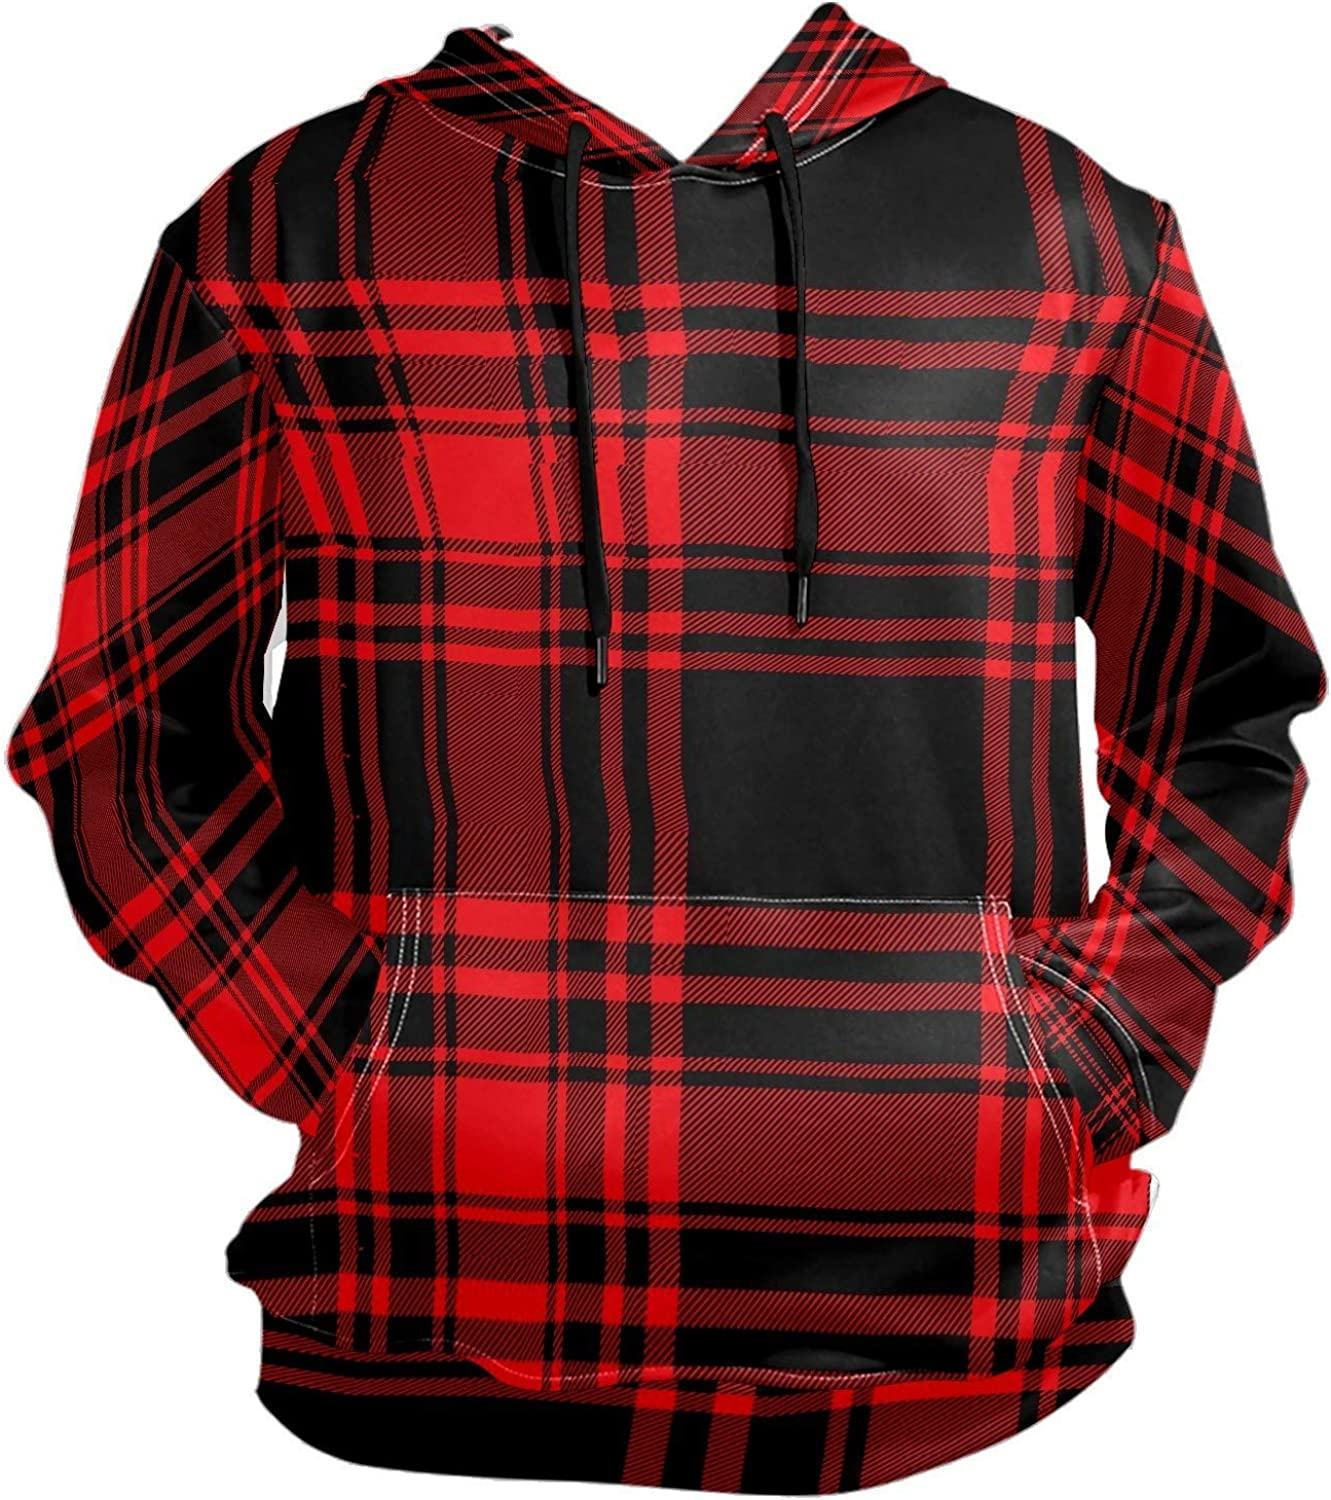 Men's Sport Hoodie Black And Red Plaid Lattice Big and Tall Hoodies for Men Women Oversized Hooded Sweatshirt Hip Hop Pullover Hoodie Midweight Hood for Boys Girls